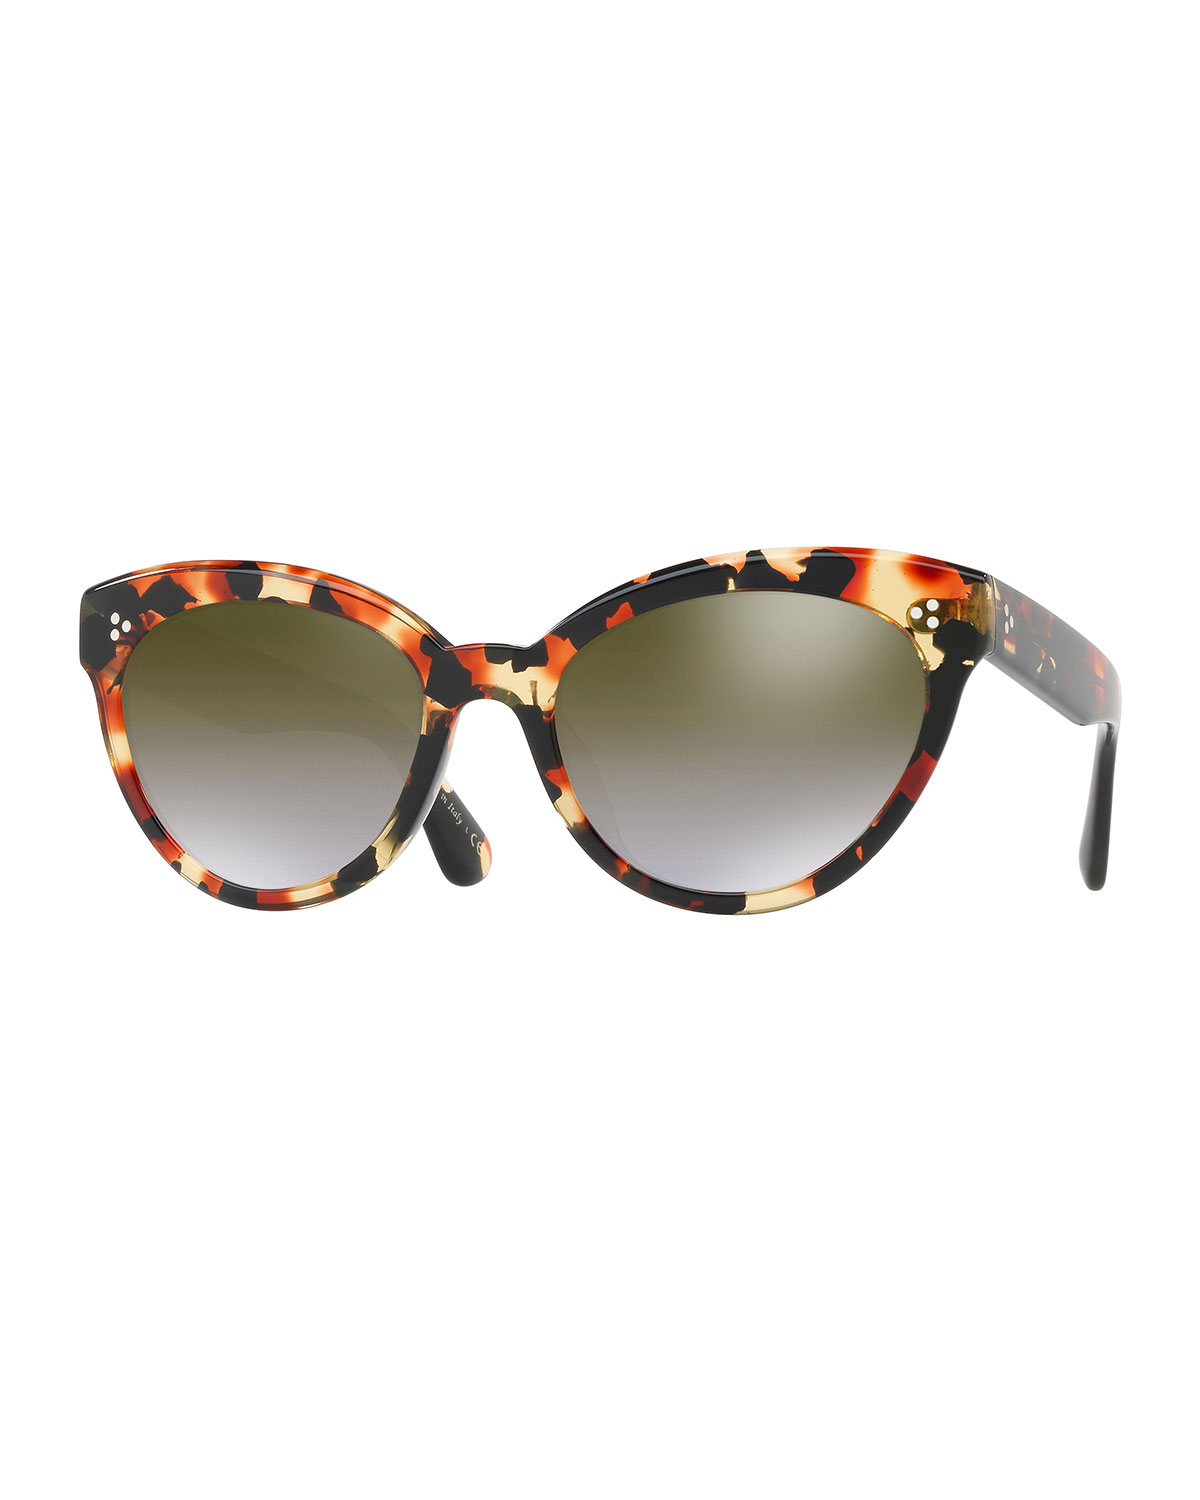 3a57cfd8d60 Oliver Peoples Roella Mirrored Cat-Eye Sunglasses